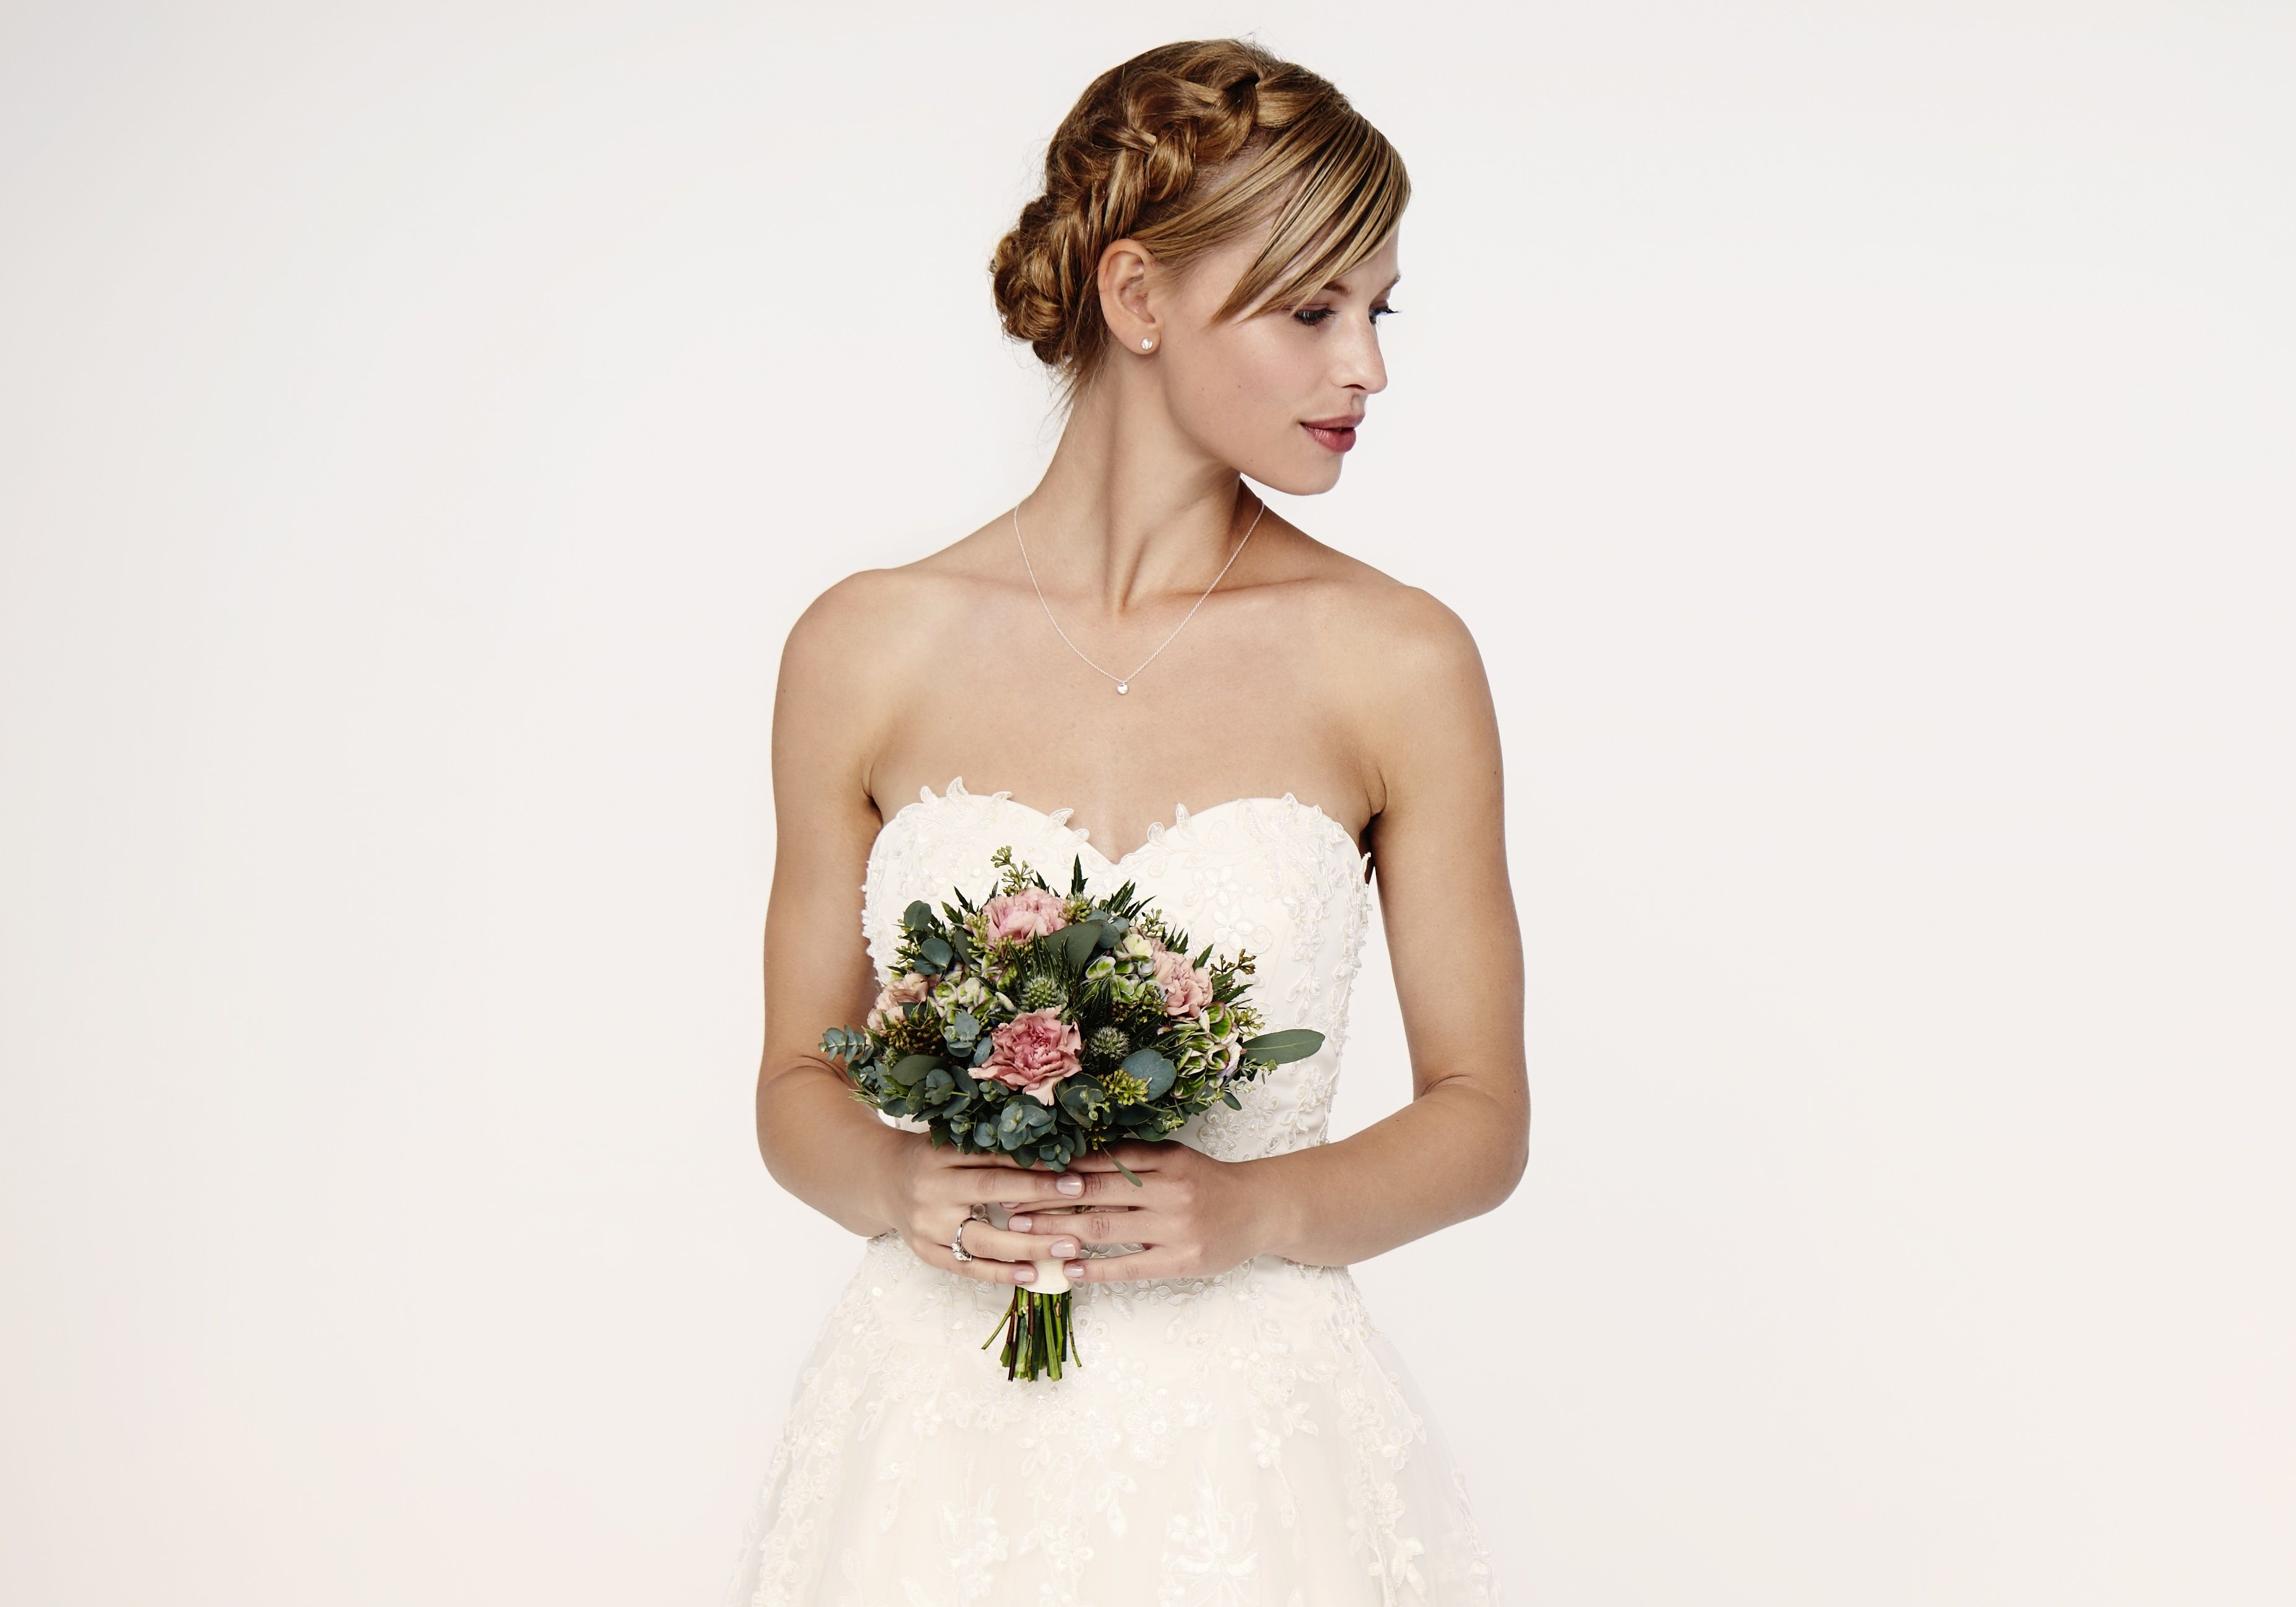 21a9b96359d23 Ever wanted to design your own wedding dress?